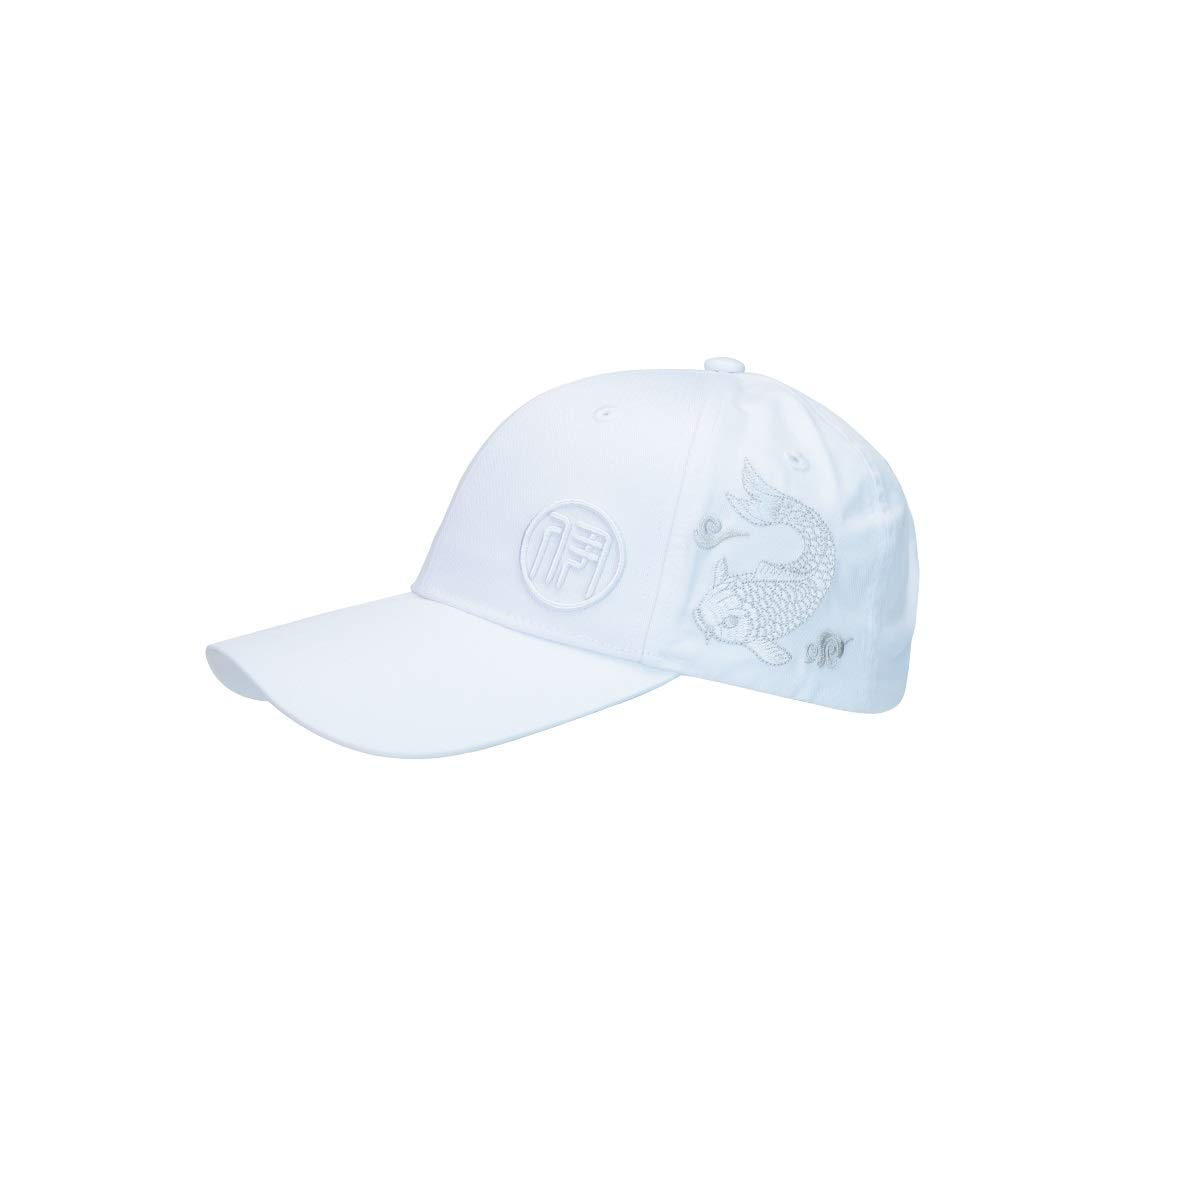 Zhongyue Spring and Autumn Chinese Style Baseball Cap Comfortable Breathable Men and Women Hat, White, Black Summer hat (Color : White)